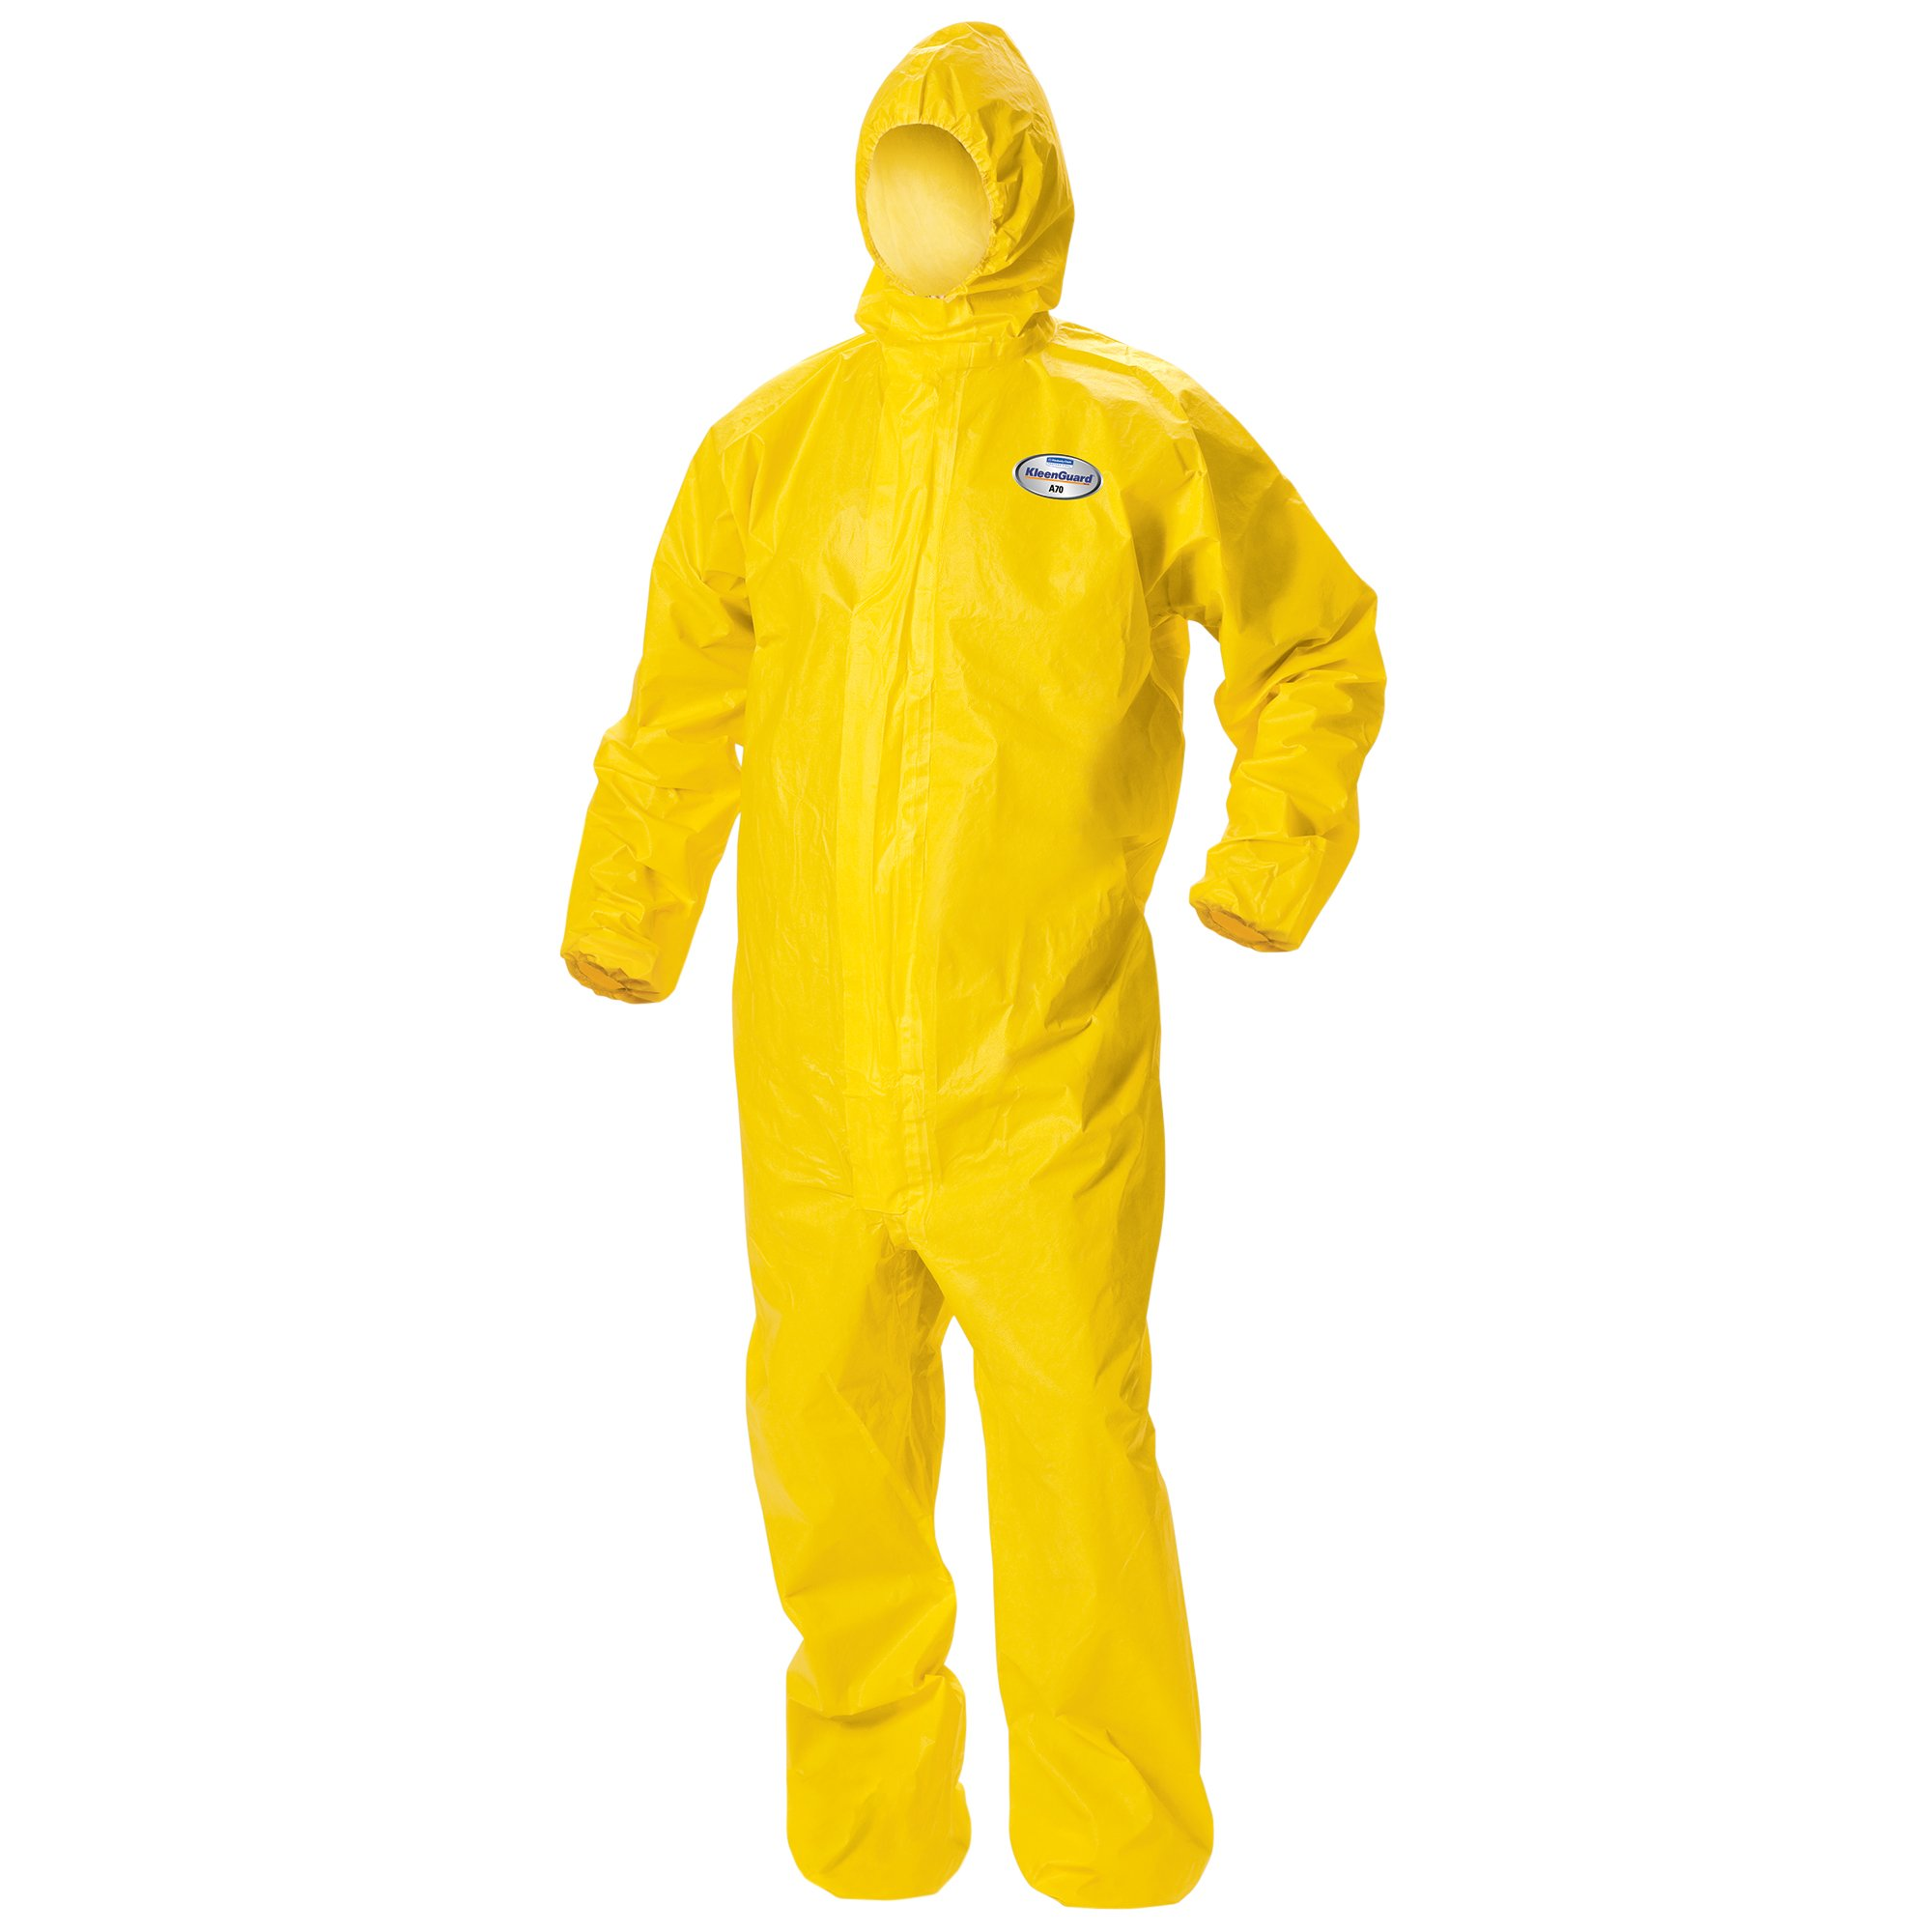 Kleenguard A70 Chemical Spray Protection Coveralls (09814) Suit, Hooded, Zip Front, Elastic Wrists & Ankles, XL, Yellow, 12 Garments / Case